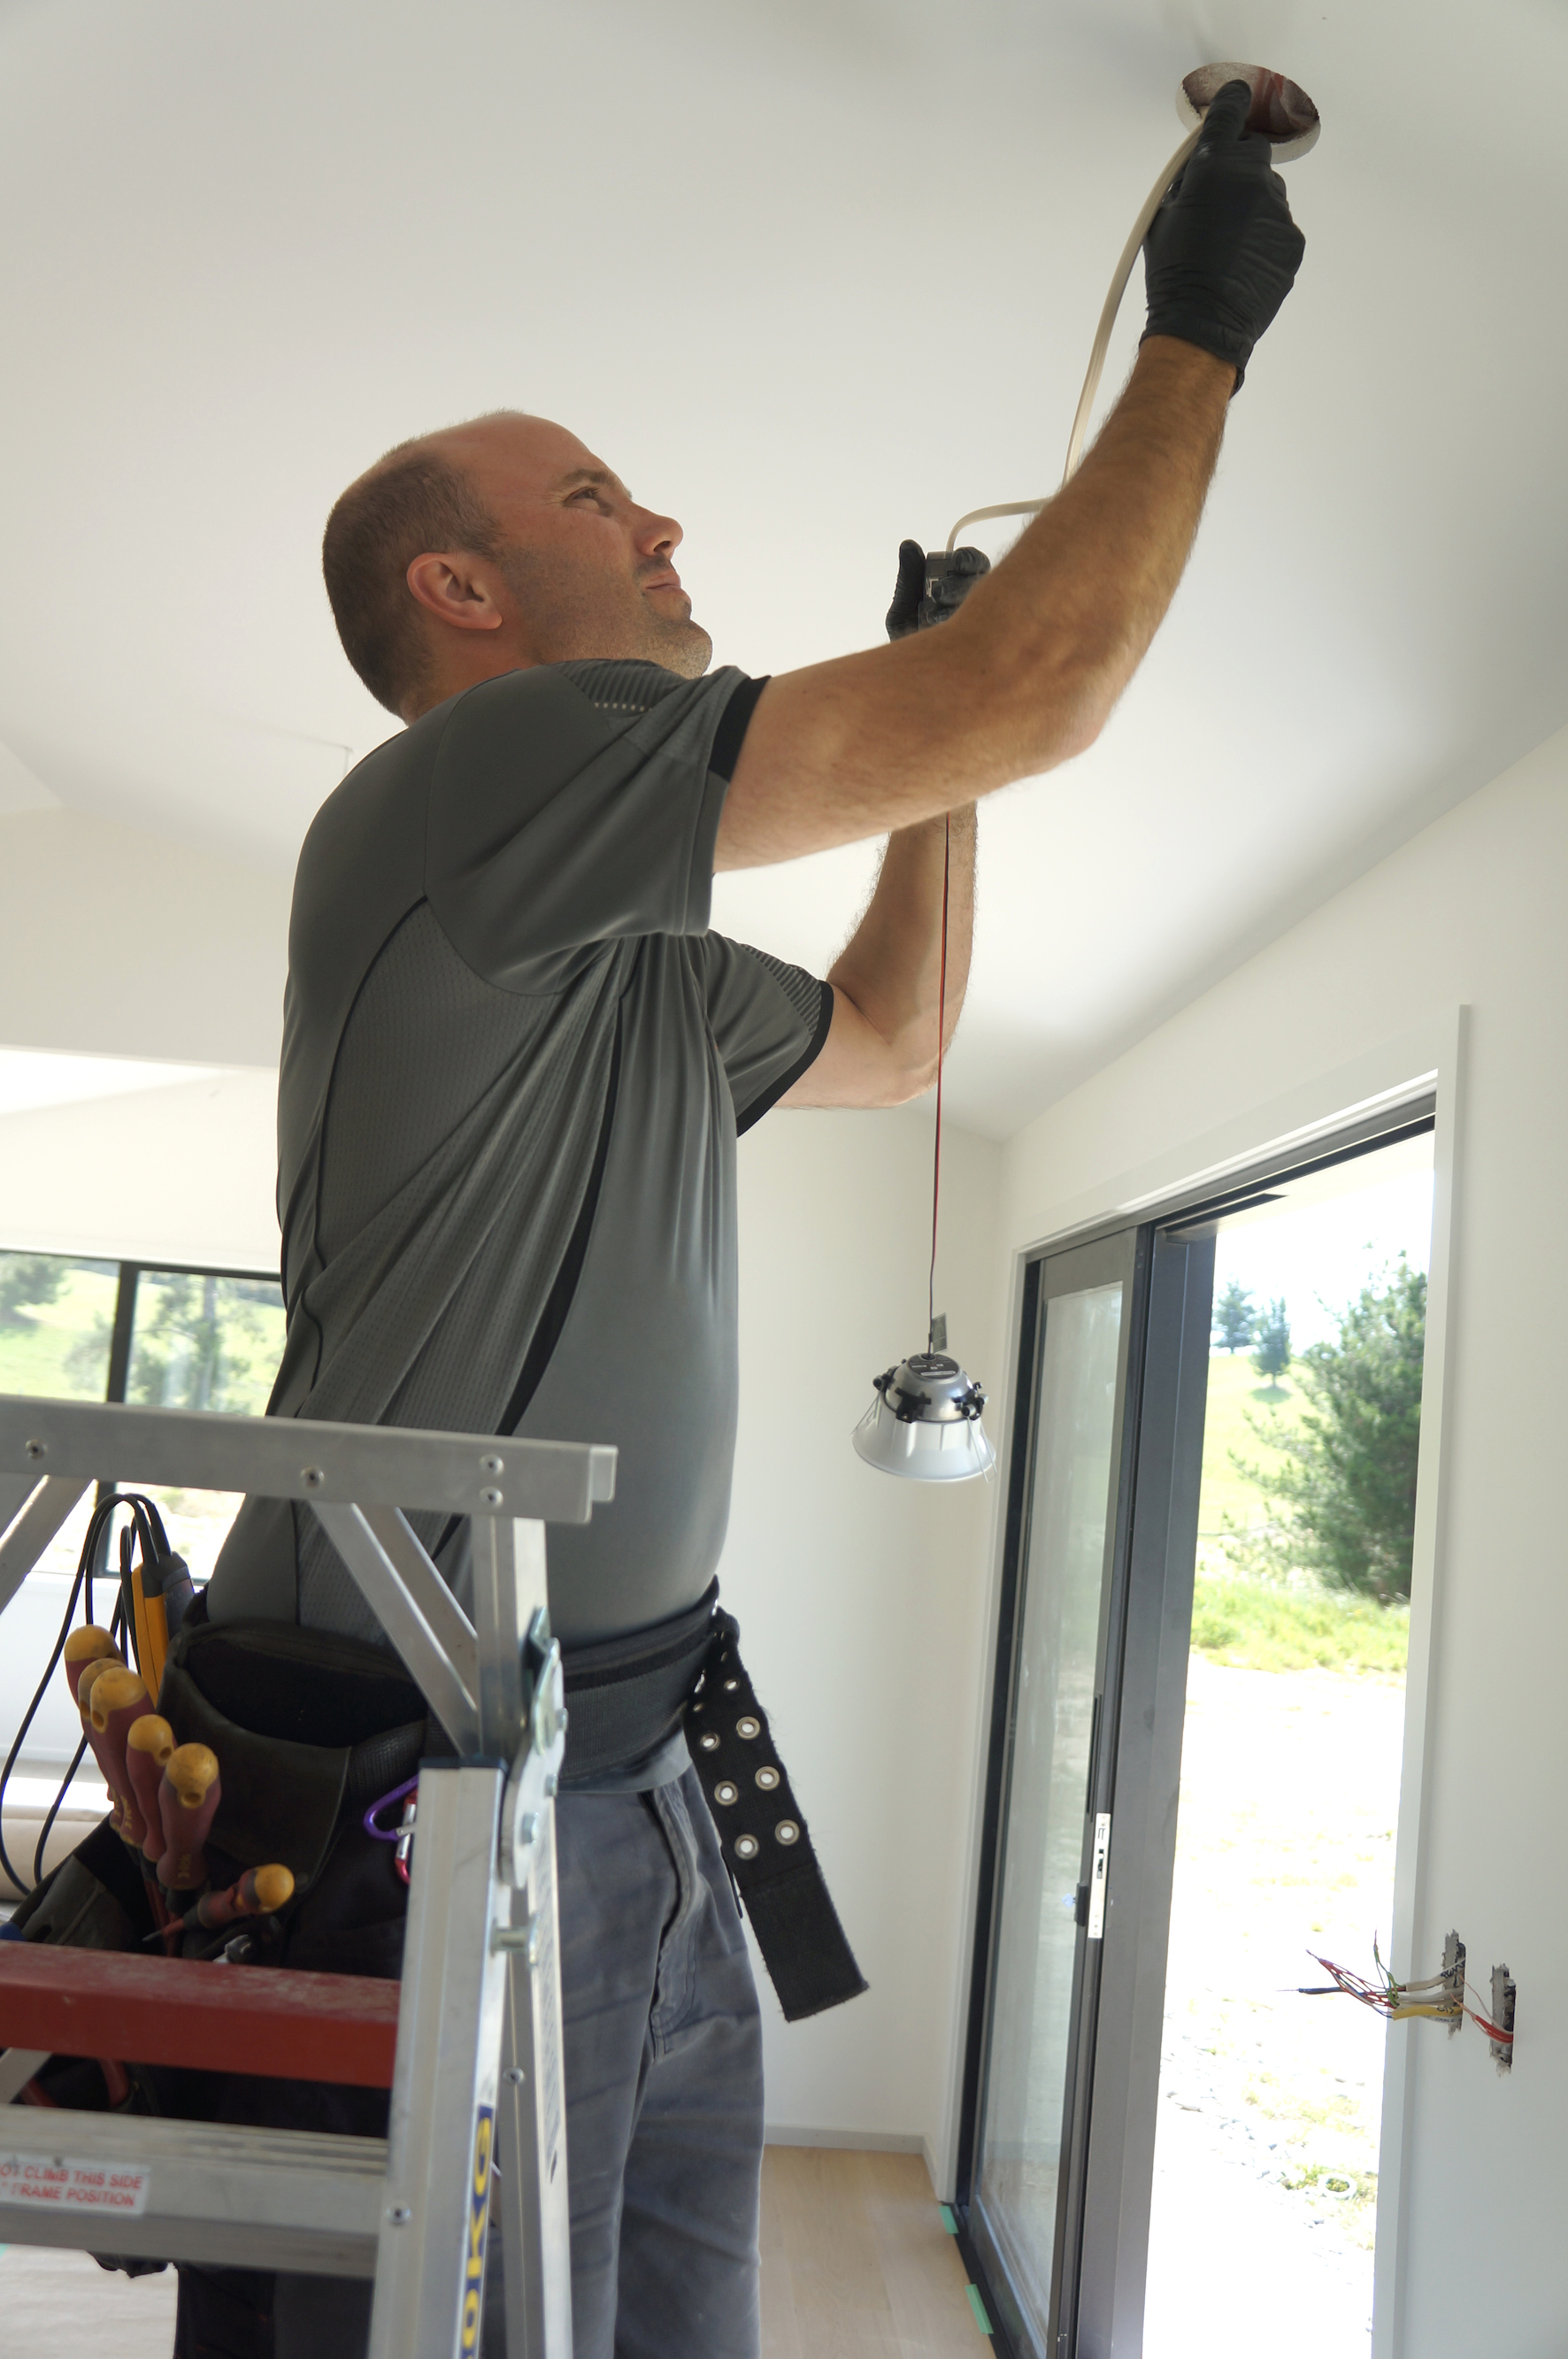 Josh Eves Registered Electrician installing a downlight